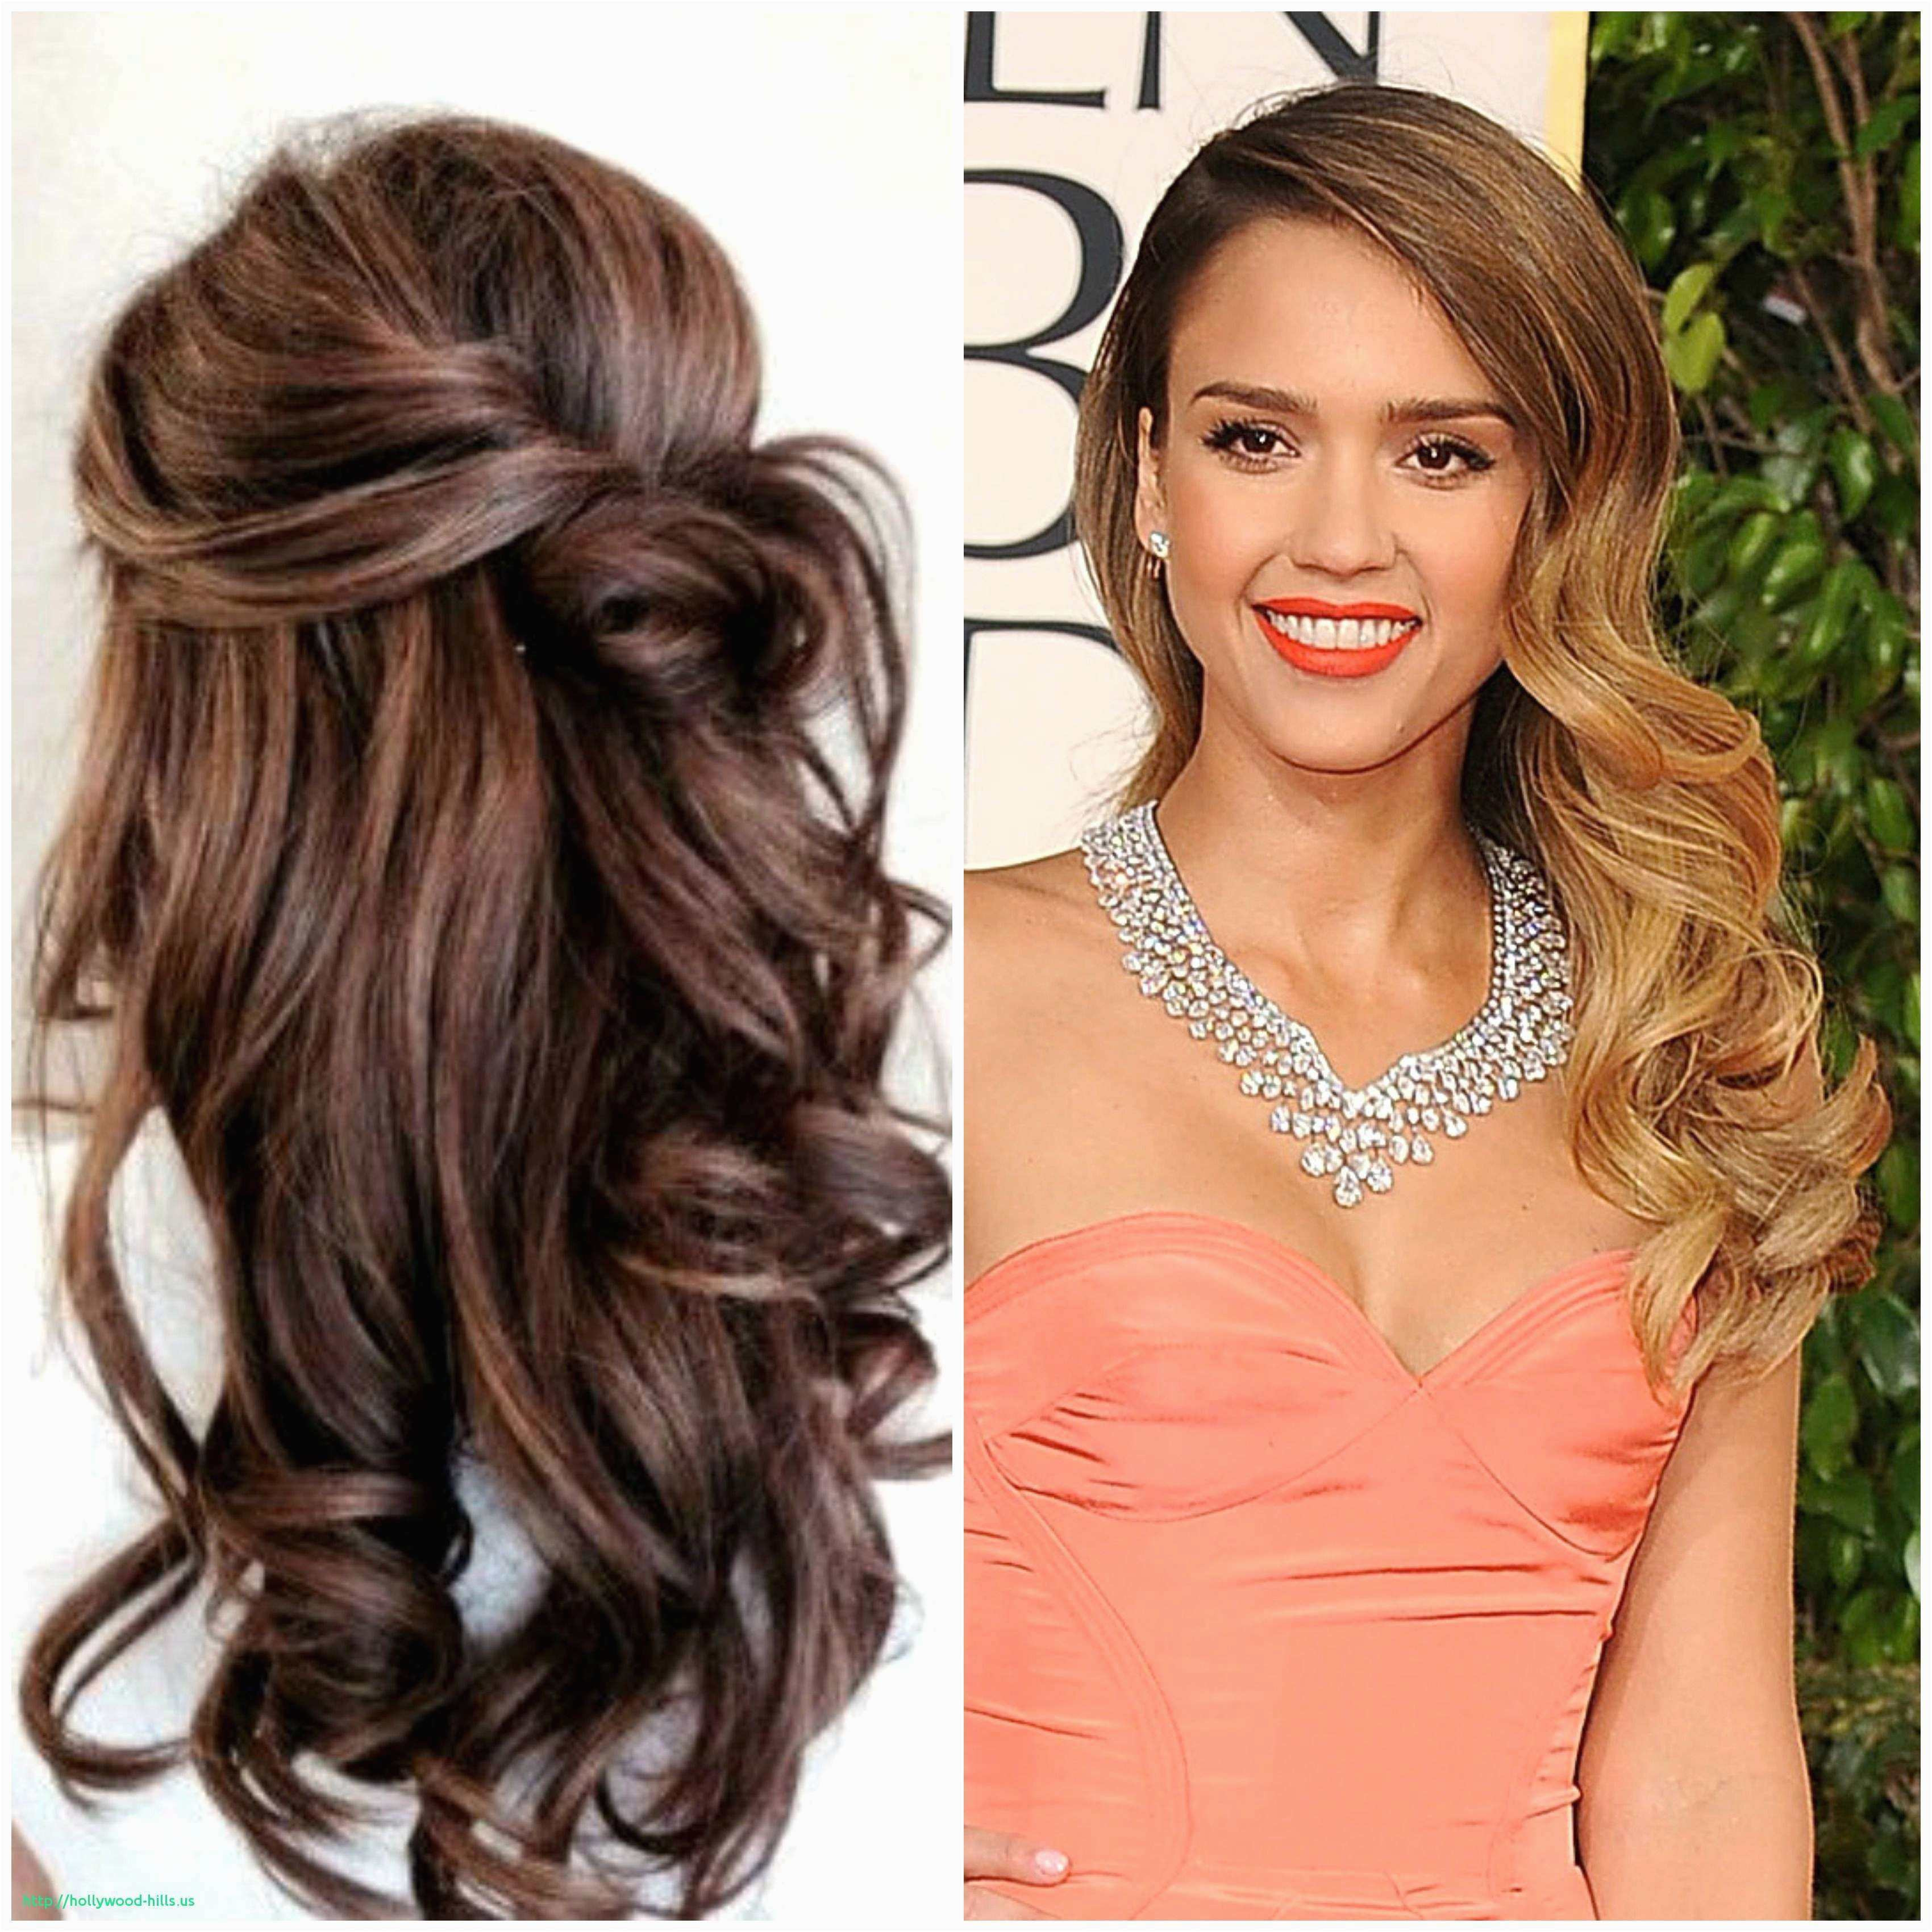 Simple Elegant Magnificent Engagement Hairstyle 0d For Your Style of hairstyle Awesome